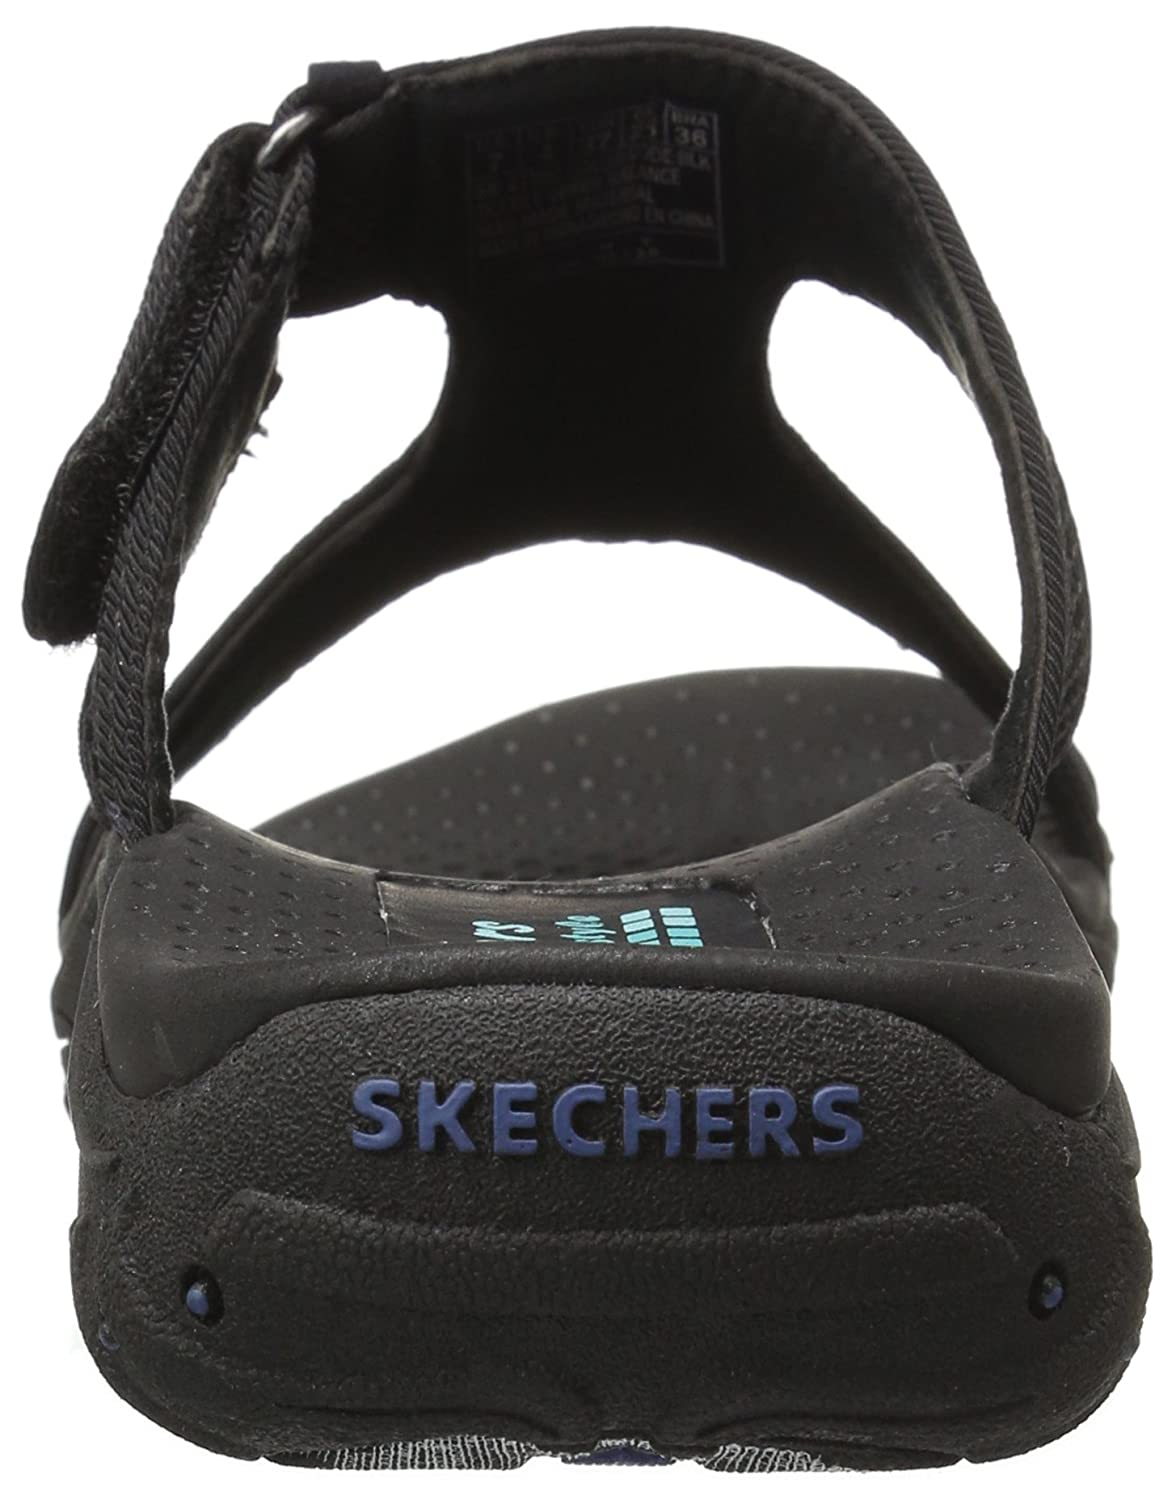 8b4865be7691 Skechers Womens Reggae Rockfest Clogs And Mules  Amazon.co.uk  Shoes   Bags